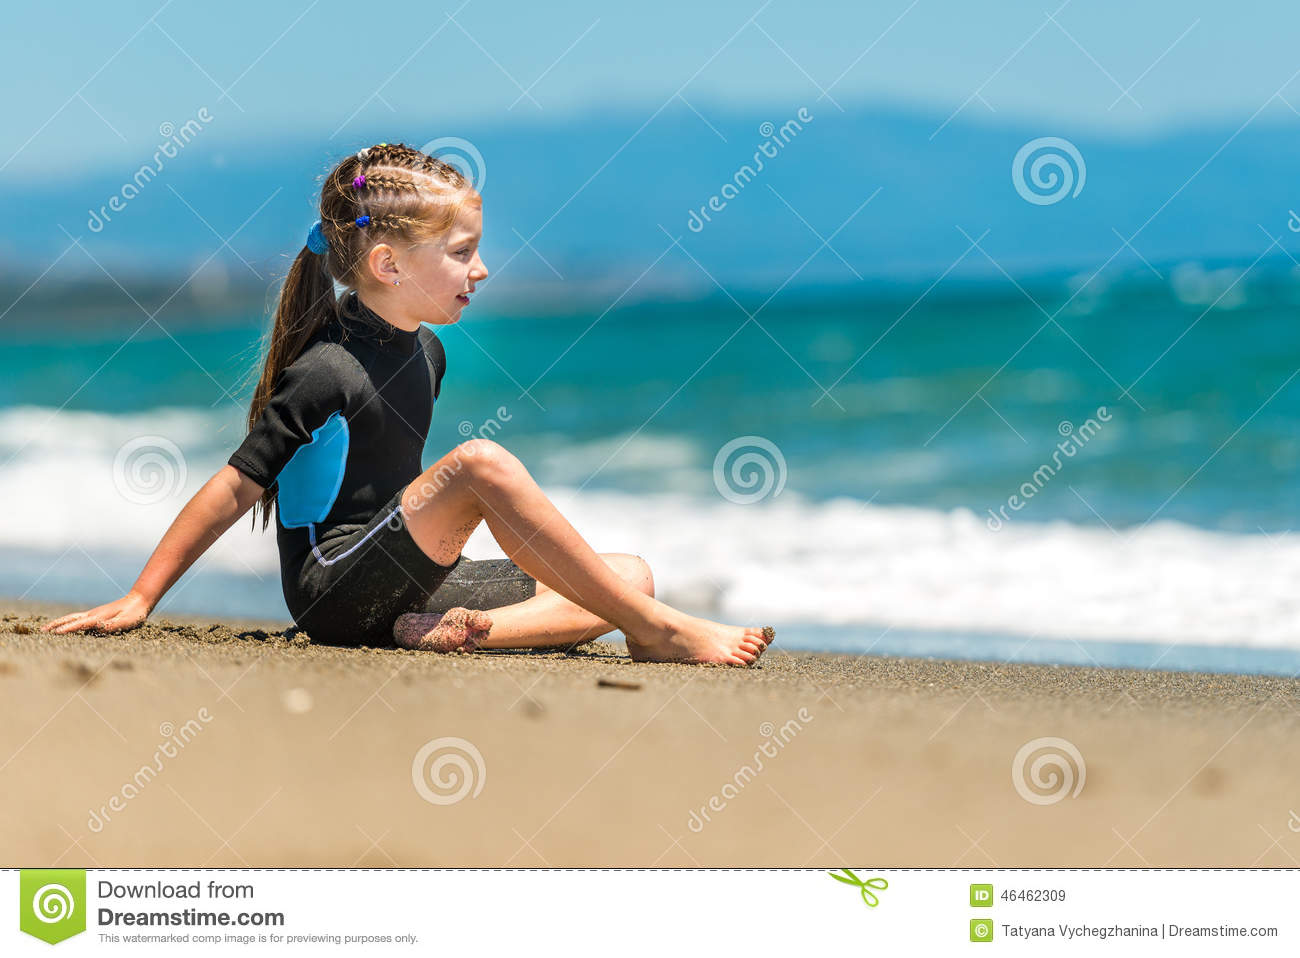 9484608659 Girl in a wetsuit on the beach. Little girl sitting in a wetsuit on the